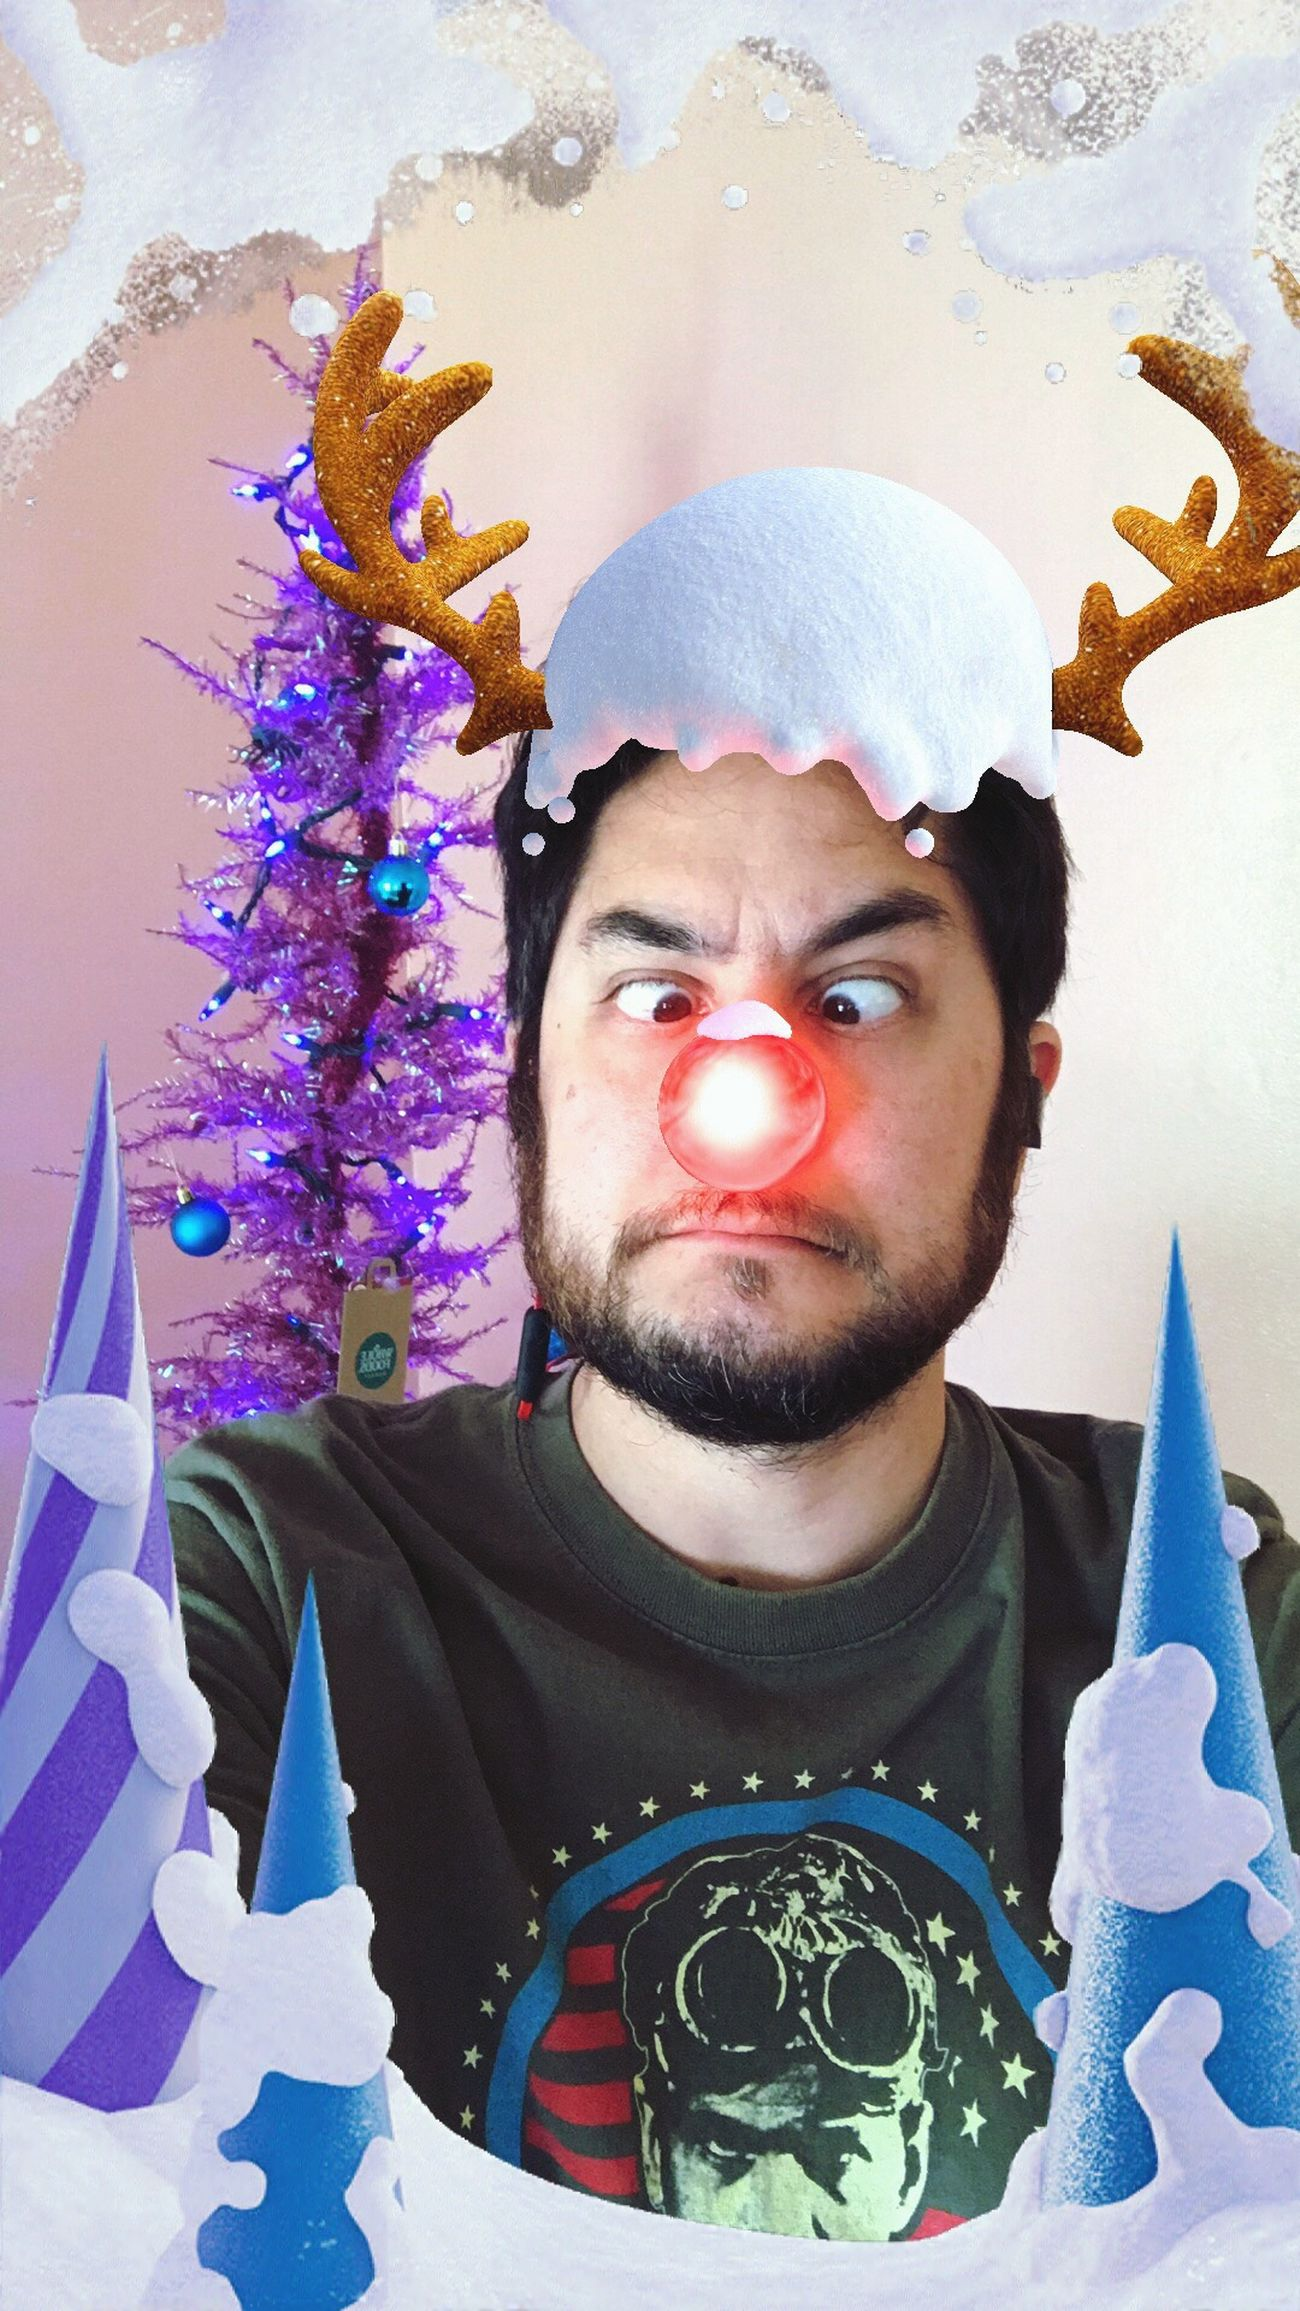 Beard Portrait Celebration Winter Wonderland Christmas Tree Holiday Red Nose Nose Being Silly Antlers Selfie ✌ That's Me! ThatsMe